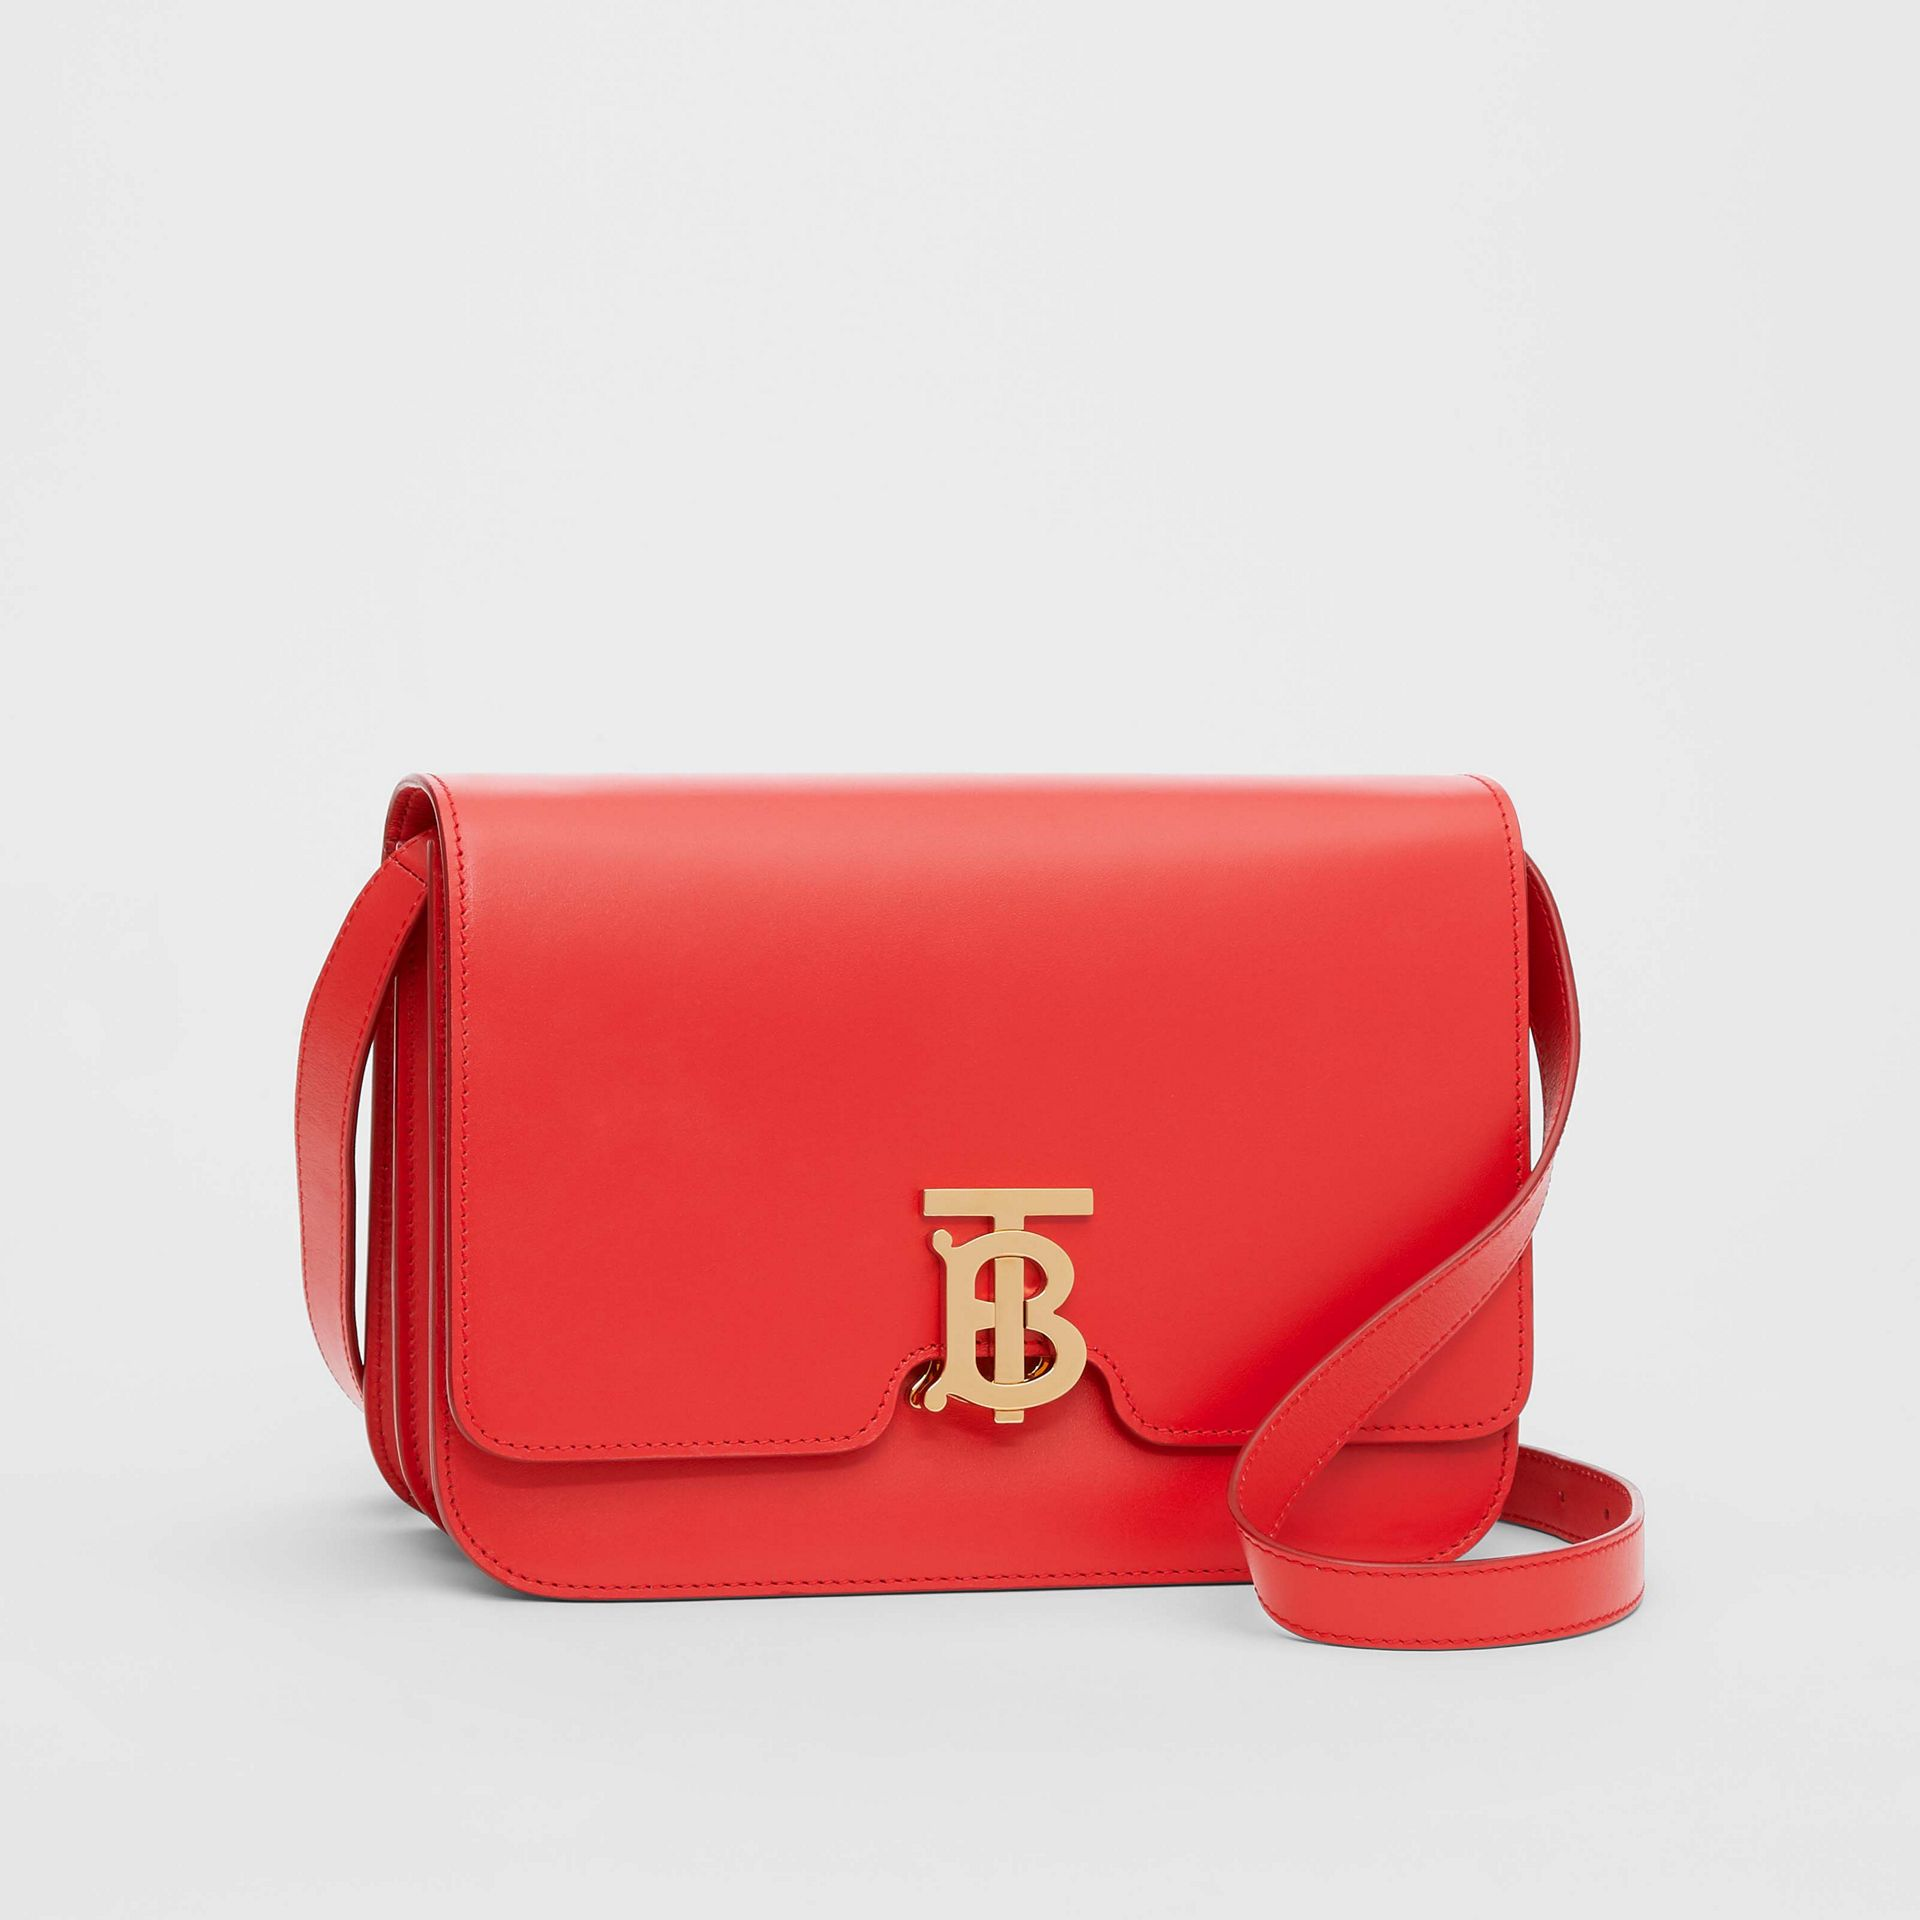 Medium Leather TB Bag in Bright Red - Women | Burberry - gallery image 6